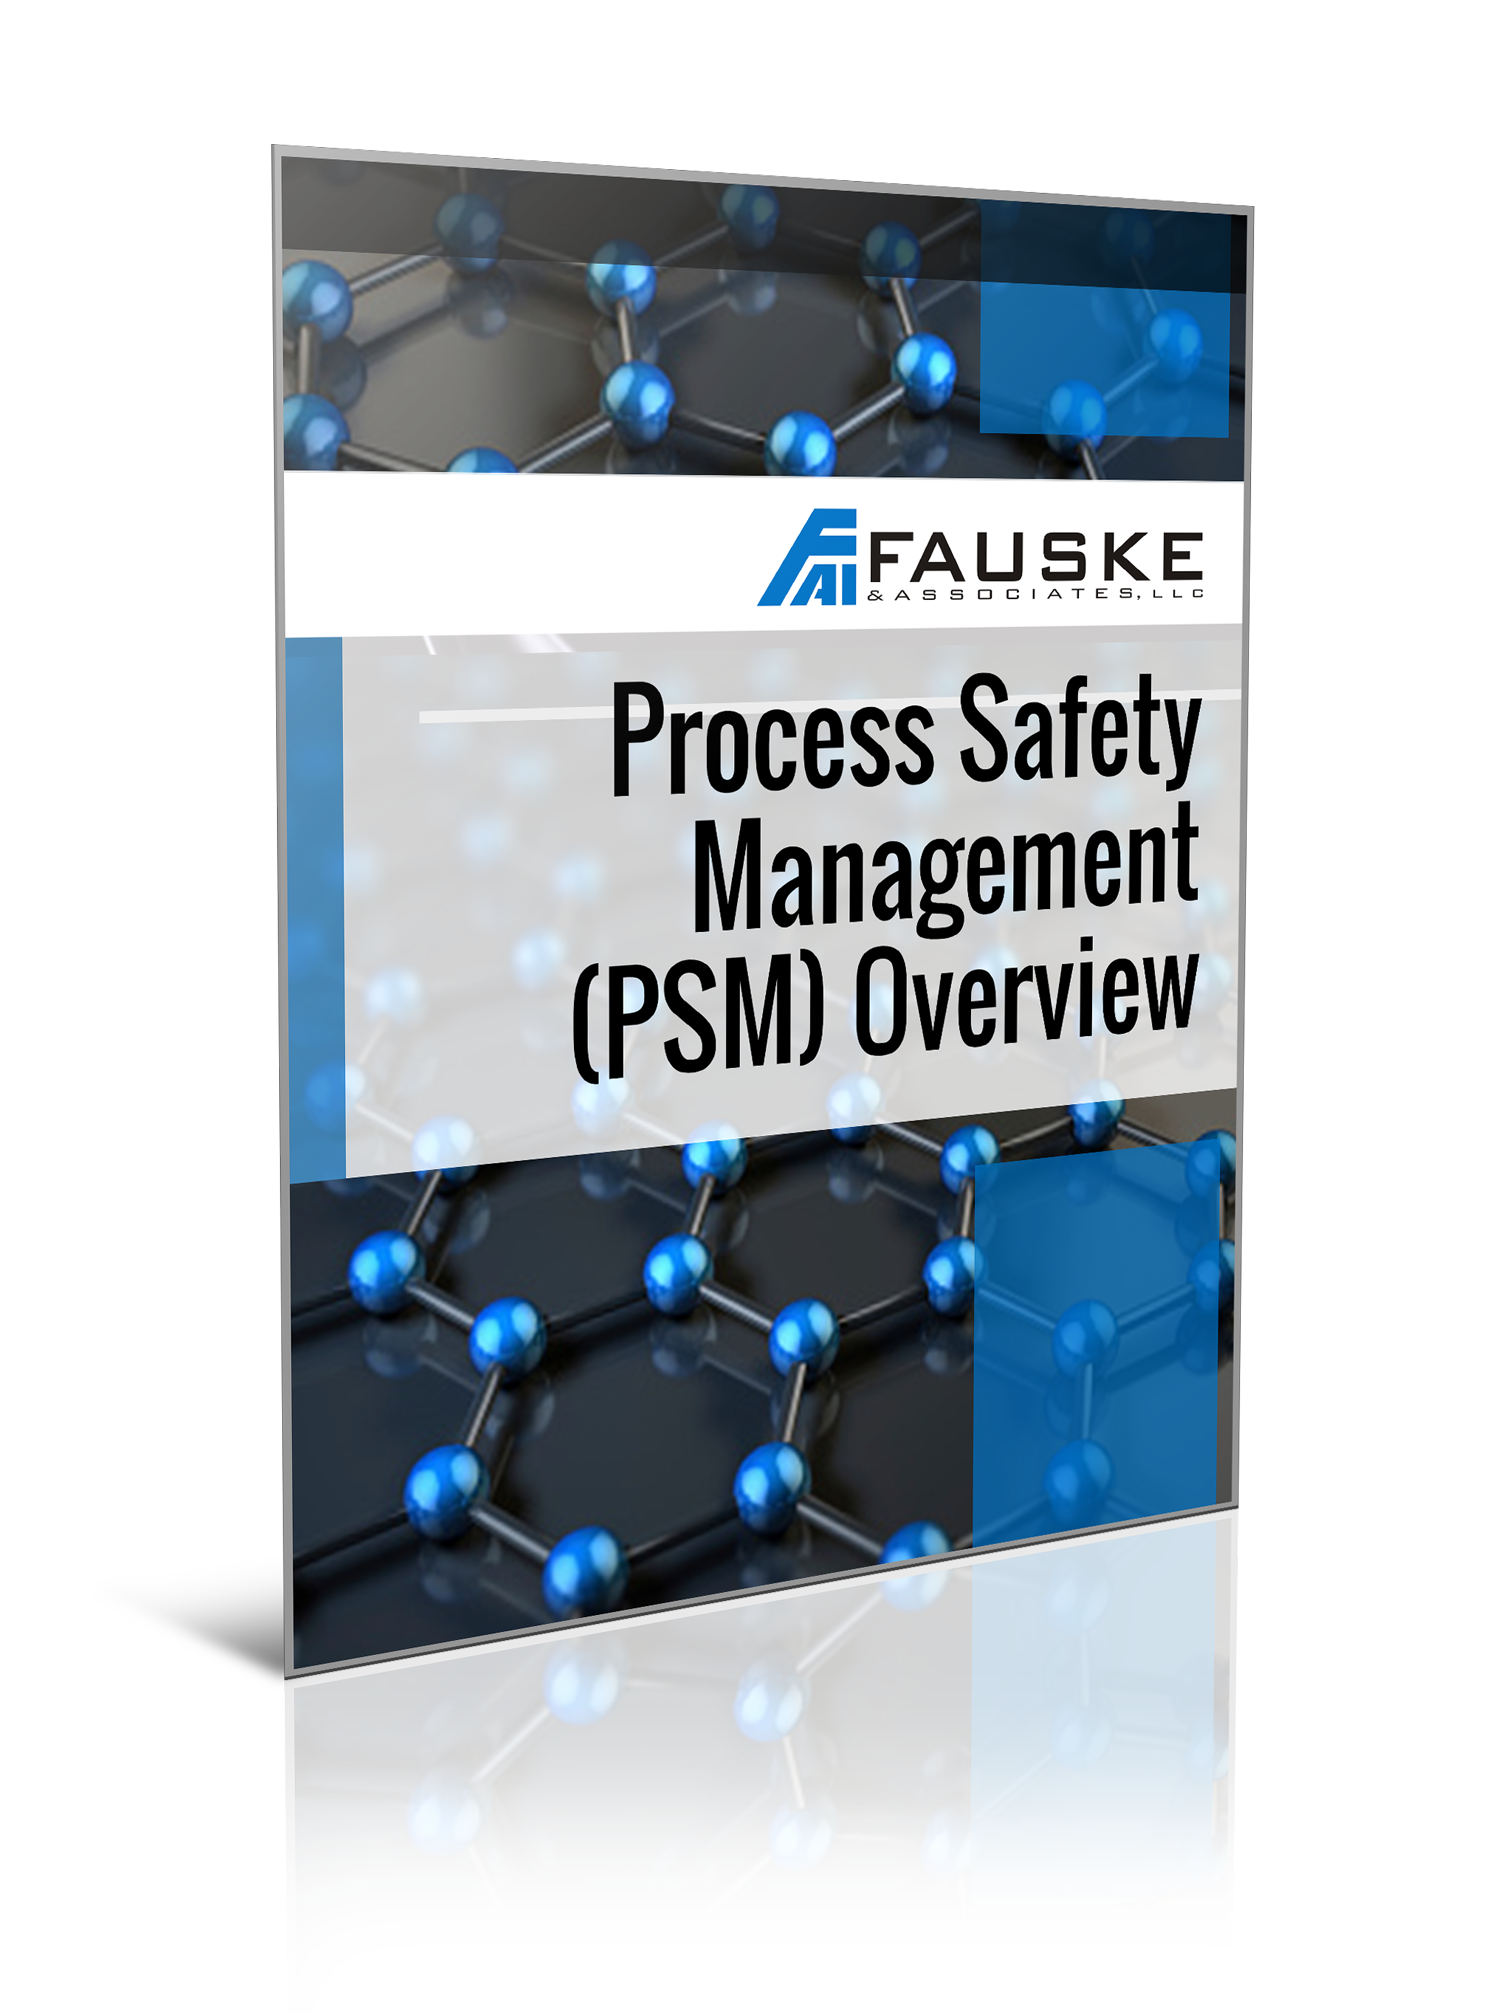 fauske-pg-cover-process-safety.png